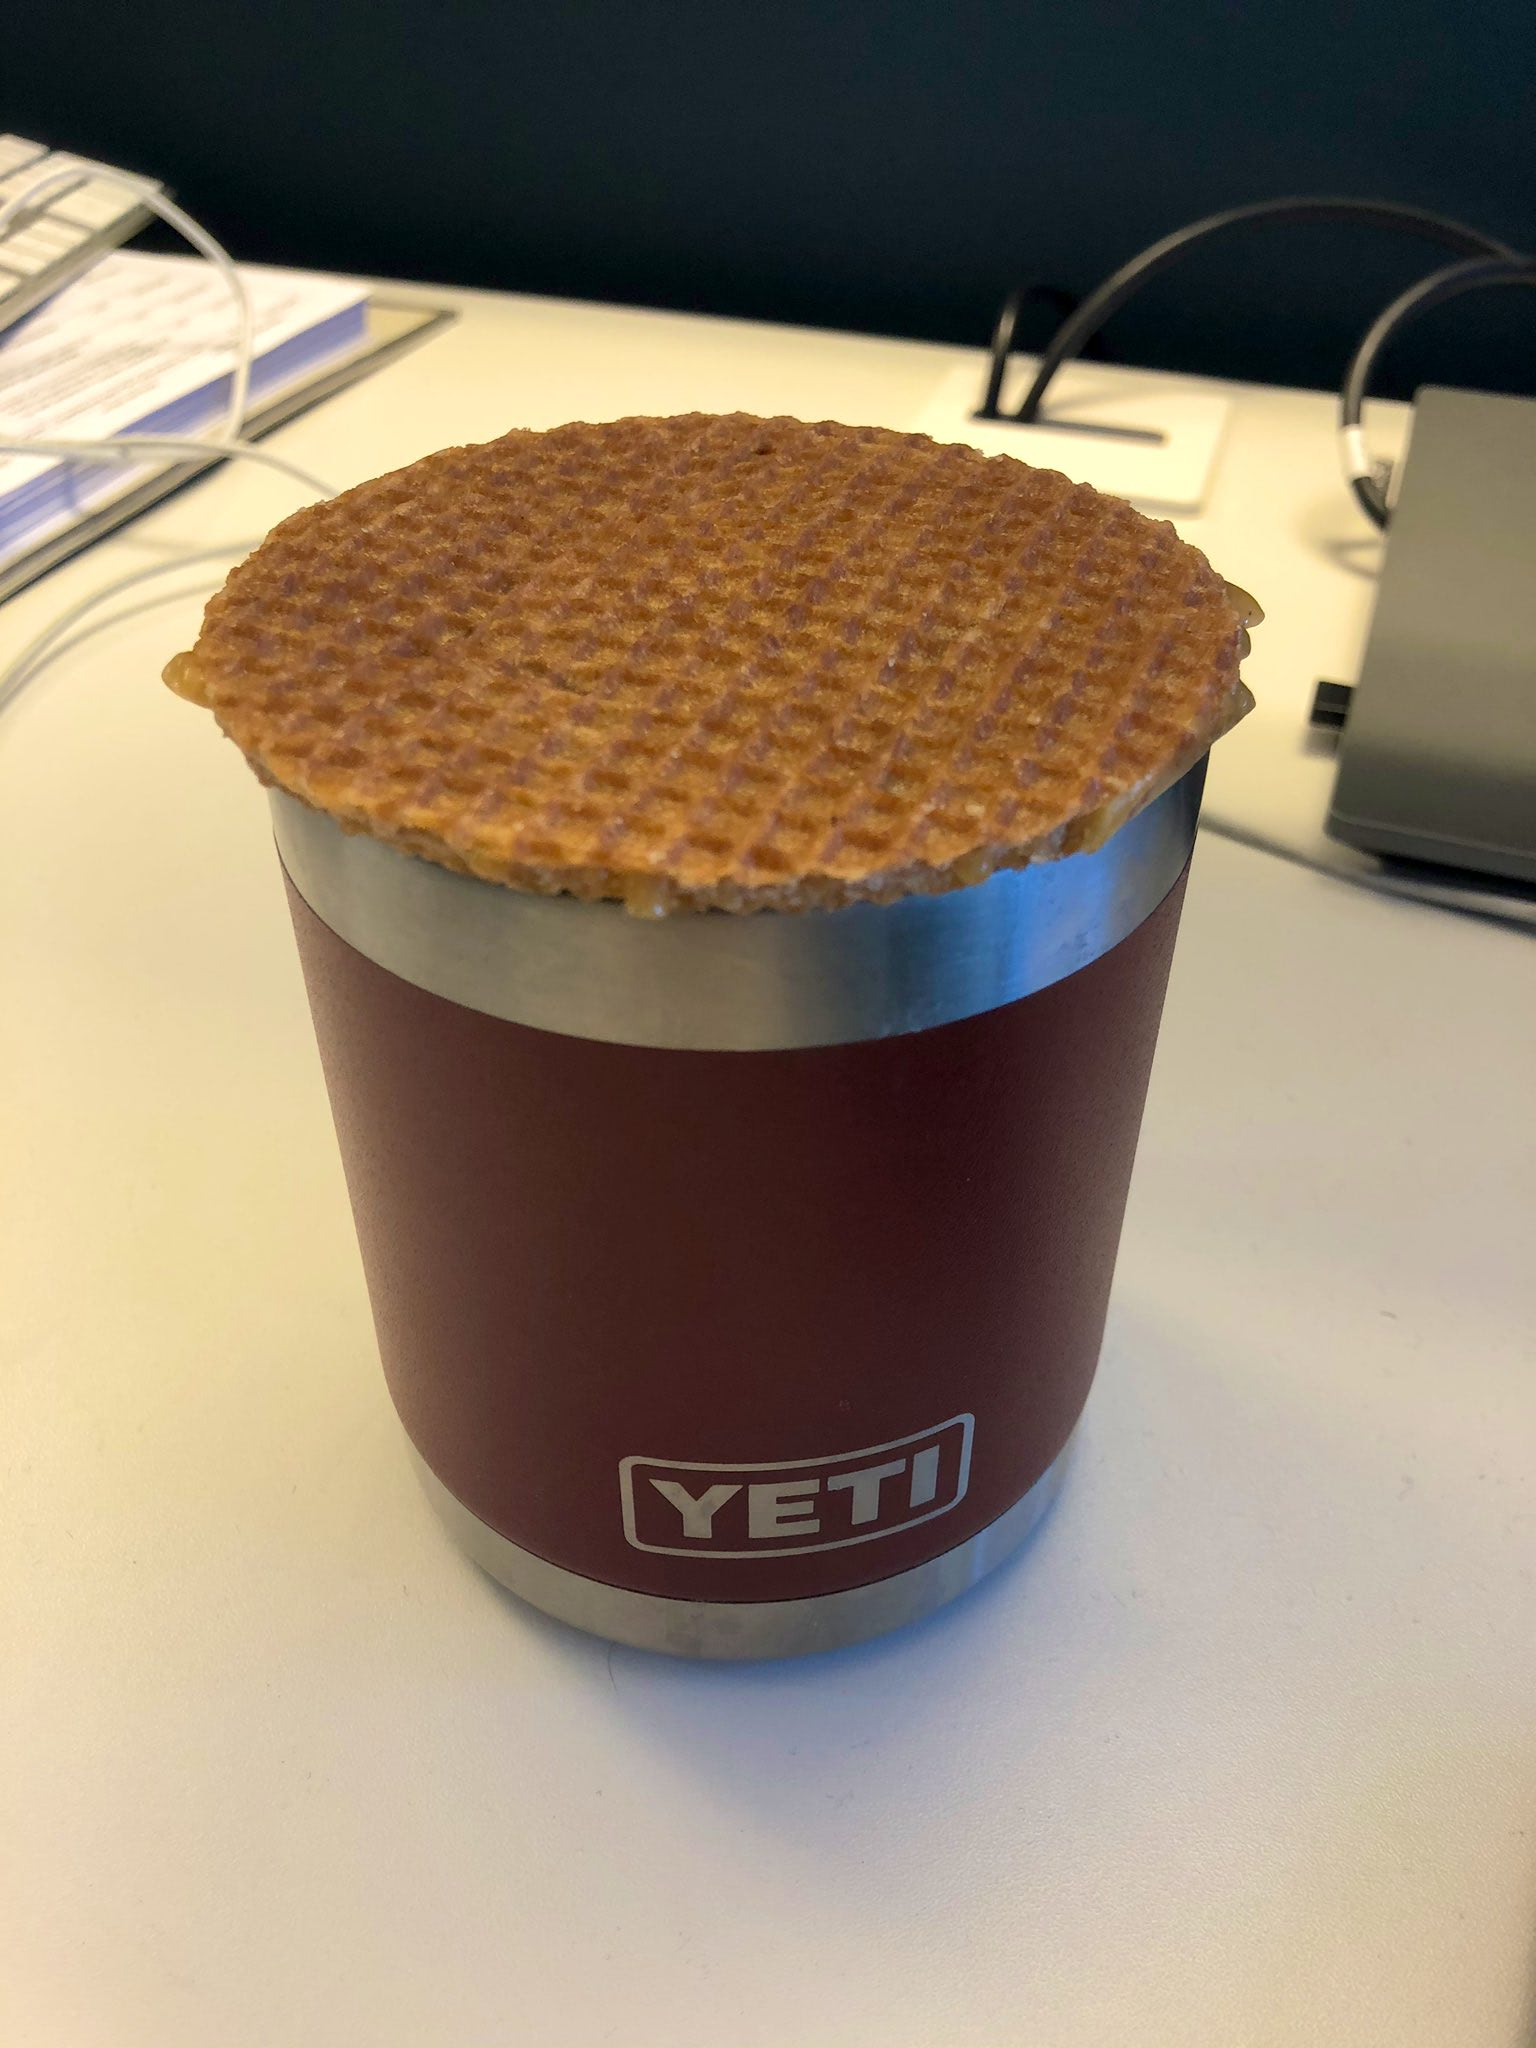 more stroopwafels sent by AppSignal